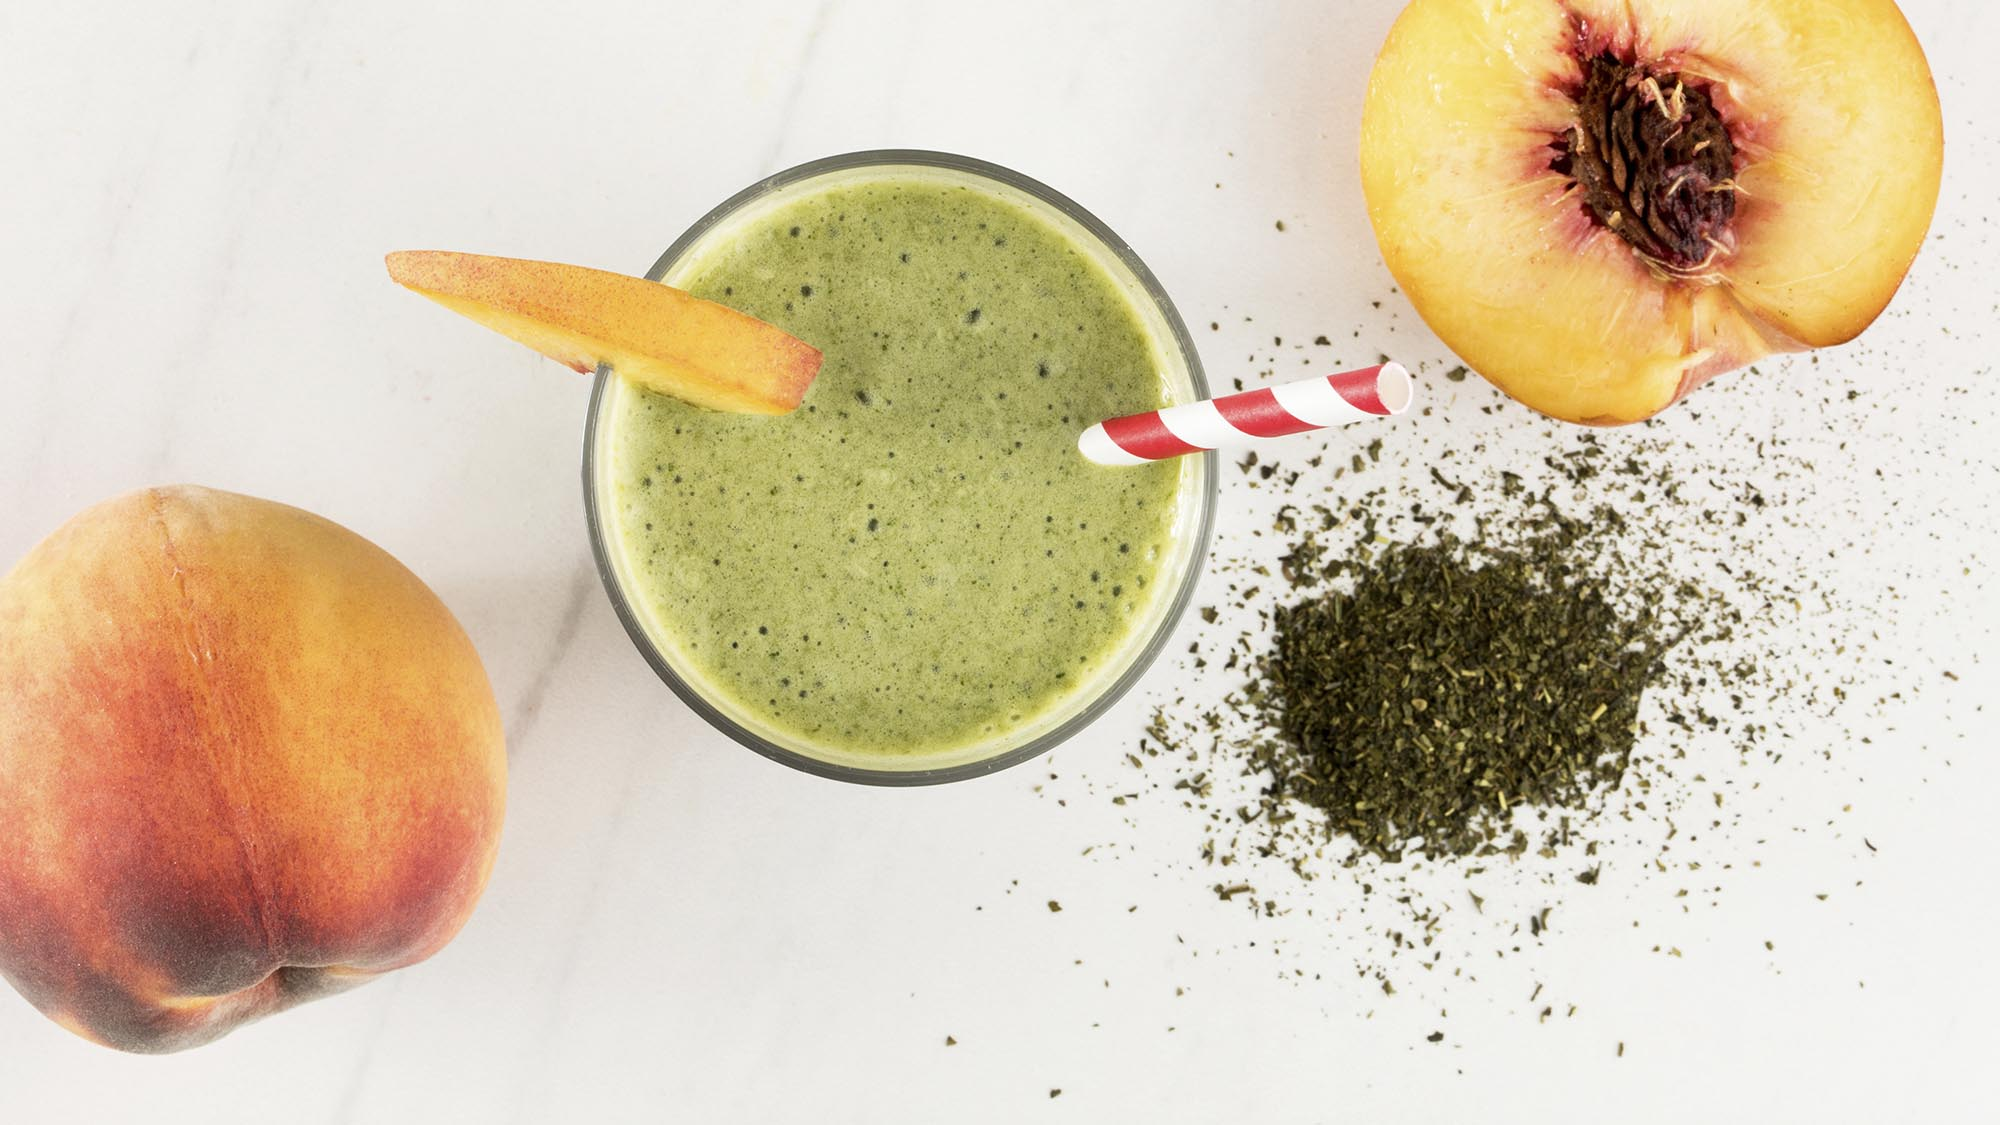 McCormick Peach Matcha Green Tea Smoothie